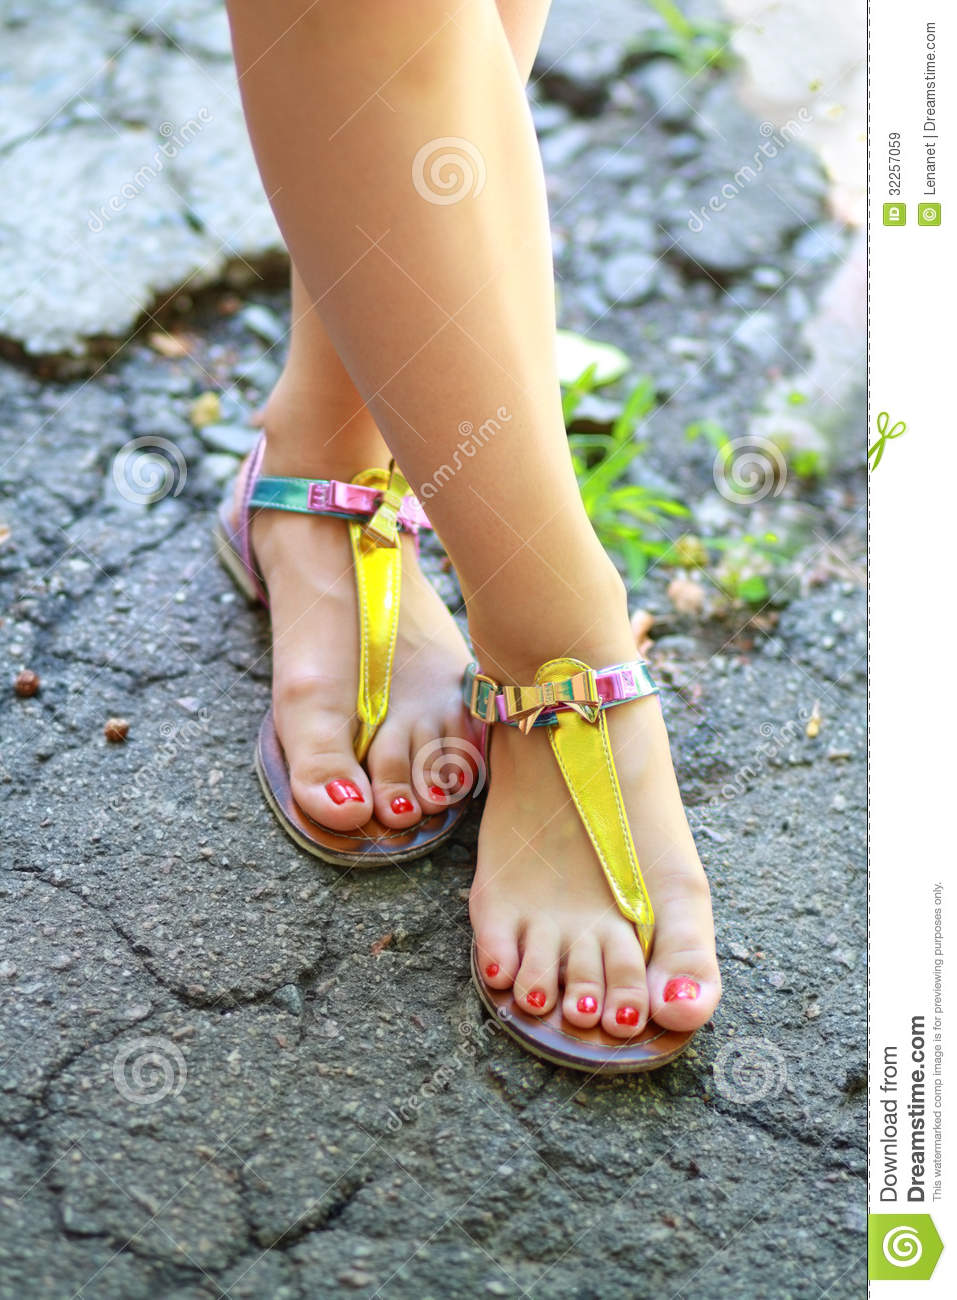 55819f5b1a179d Feet Wearing Summer Sandals Stock Image - Image of flops